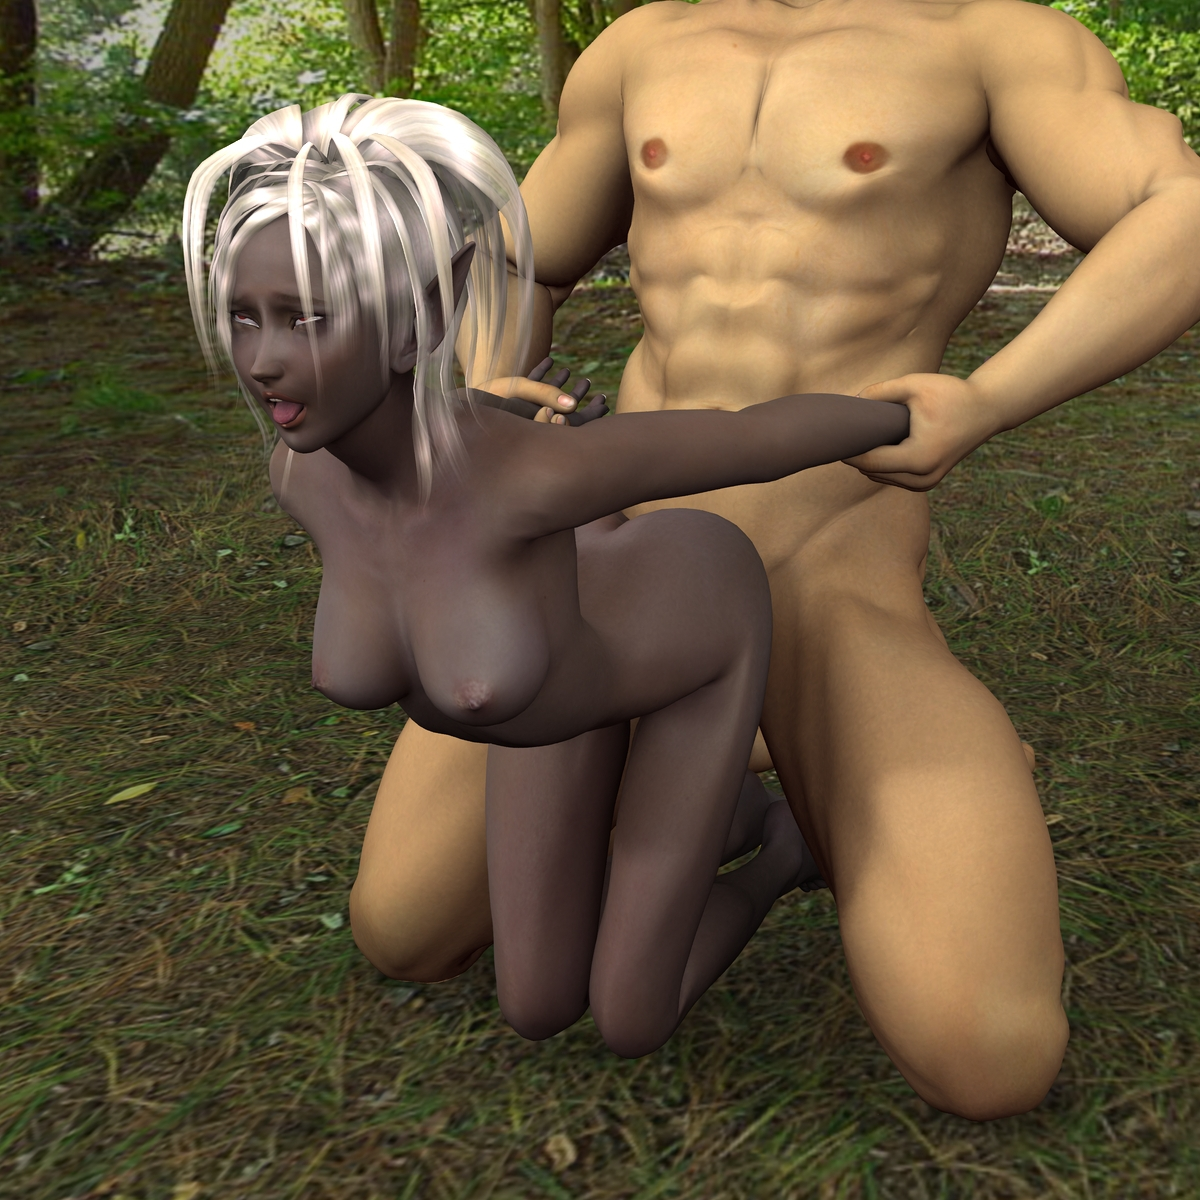 Drow sex pichar softcore videos